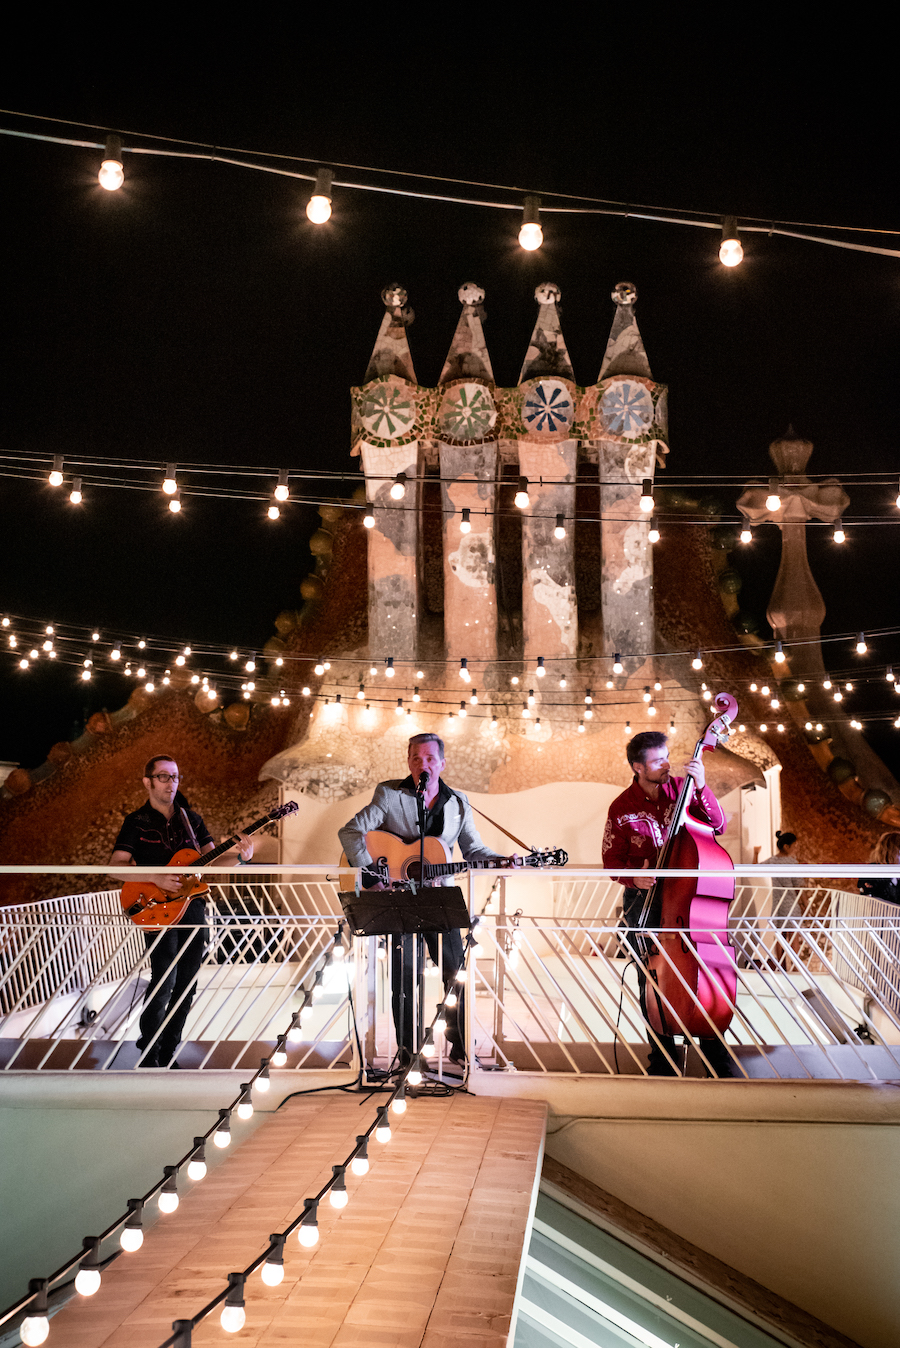 Magic Nights Rooftop Live Music at Casa Batllo Sant Jordi Day Barcelona ~ By Ben Holbrook from DriftwoodJournals.com10